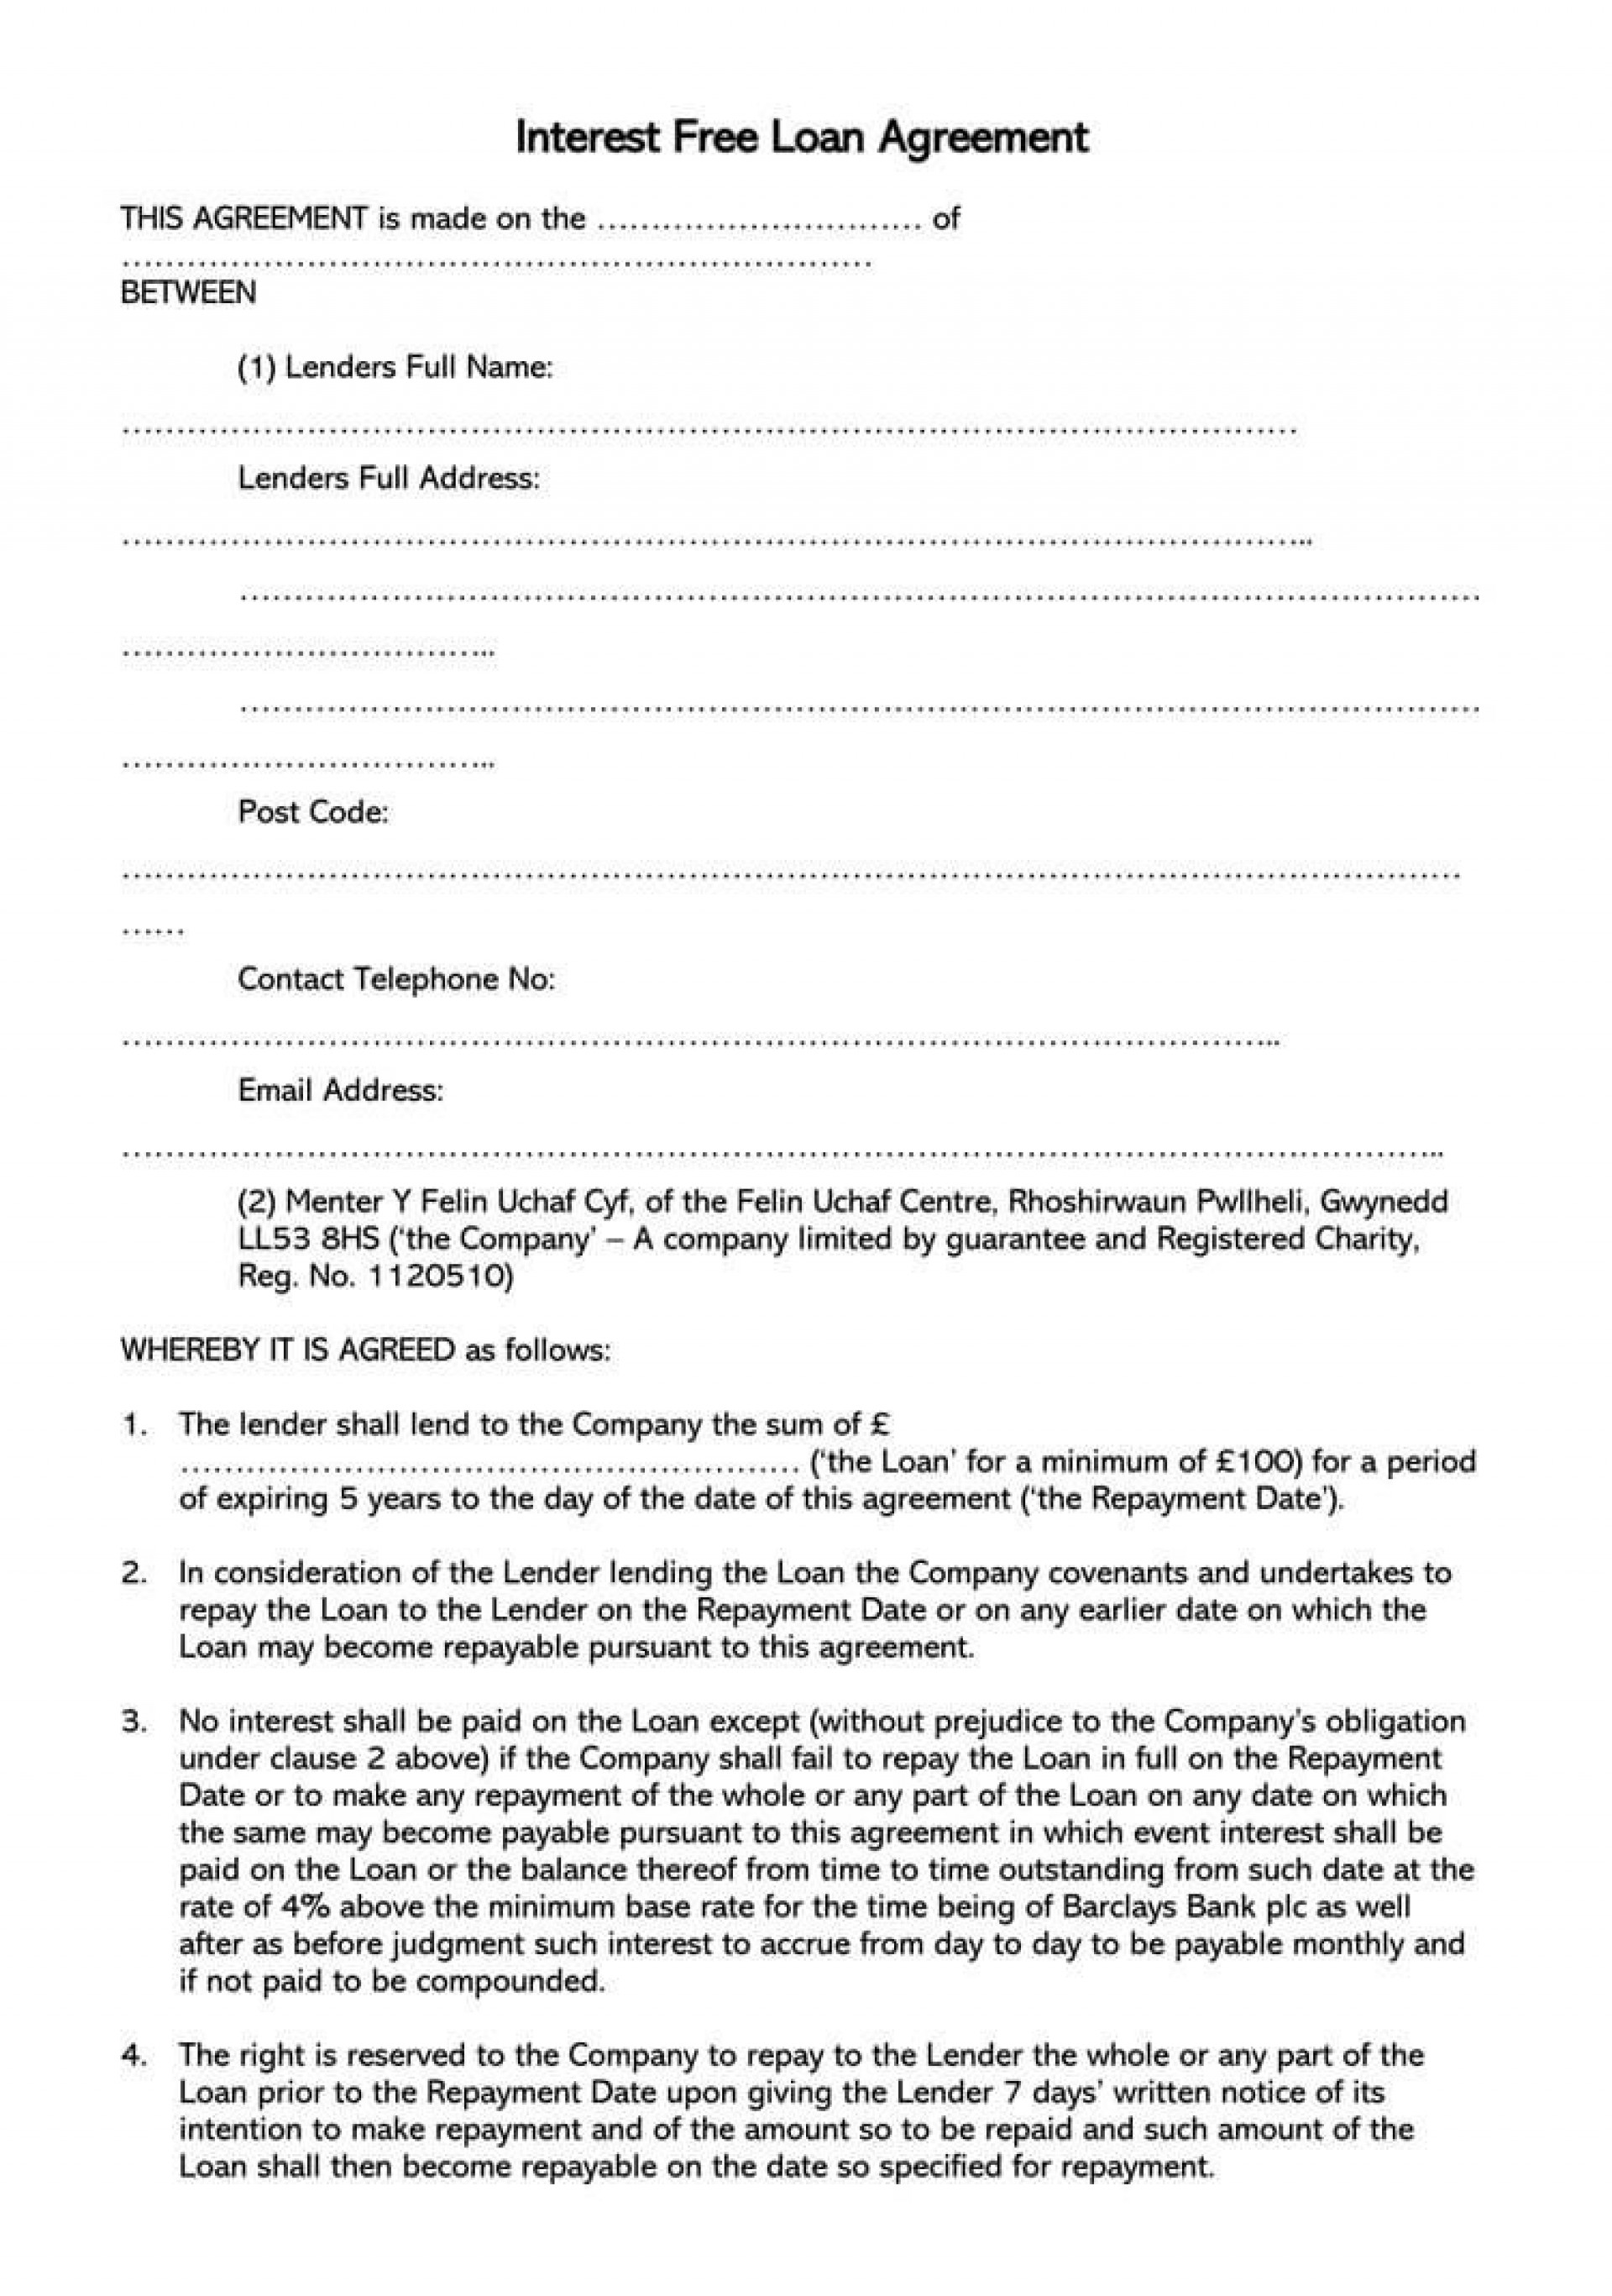 003 Rare Loan Agreement Template Free Image  Wording Family Uk Personal Australia1920